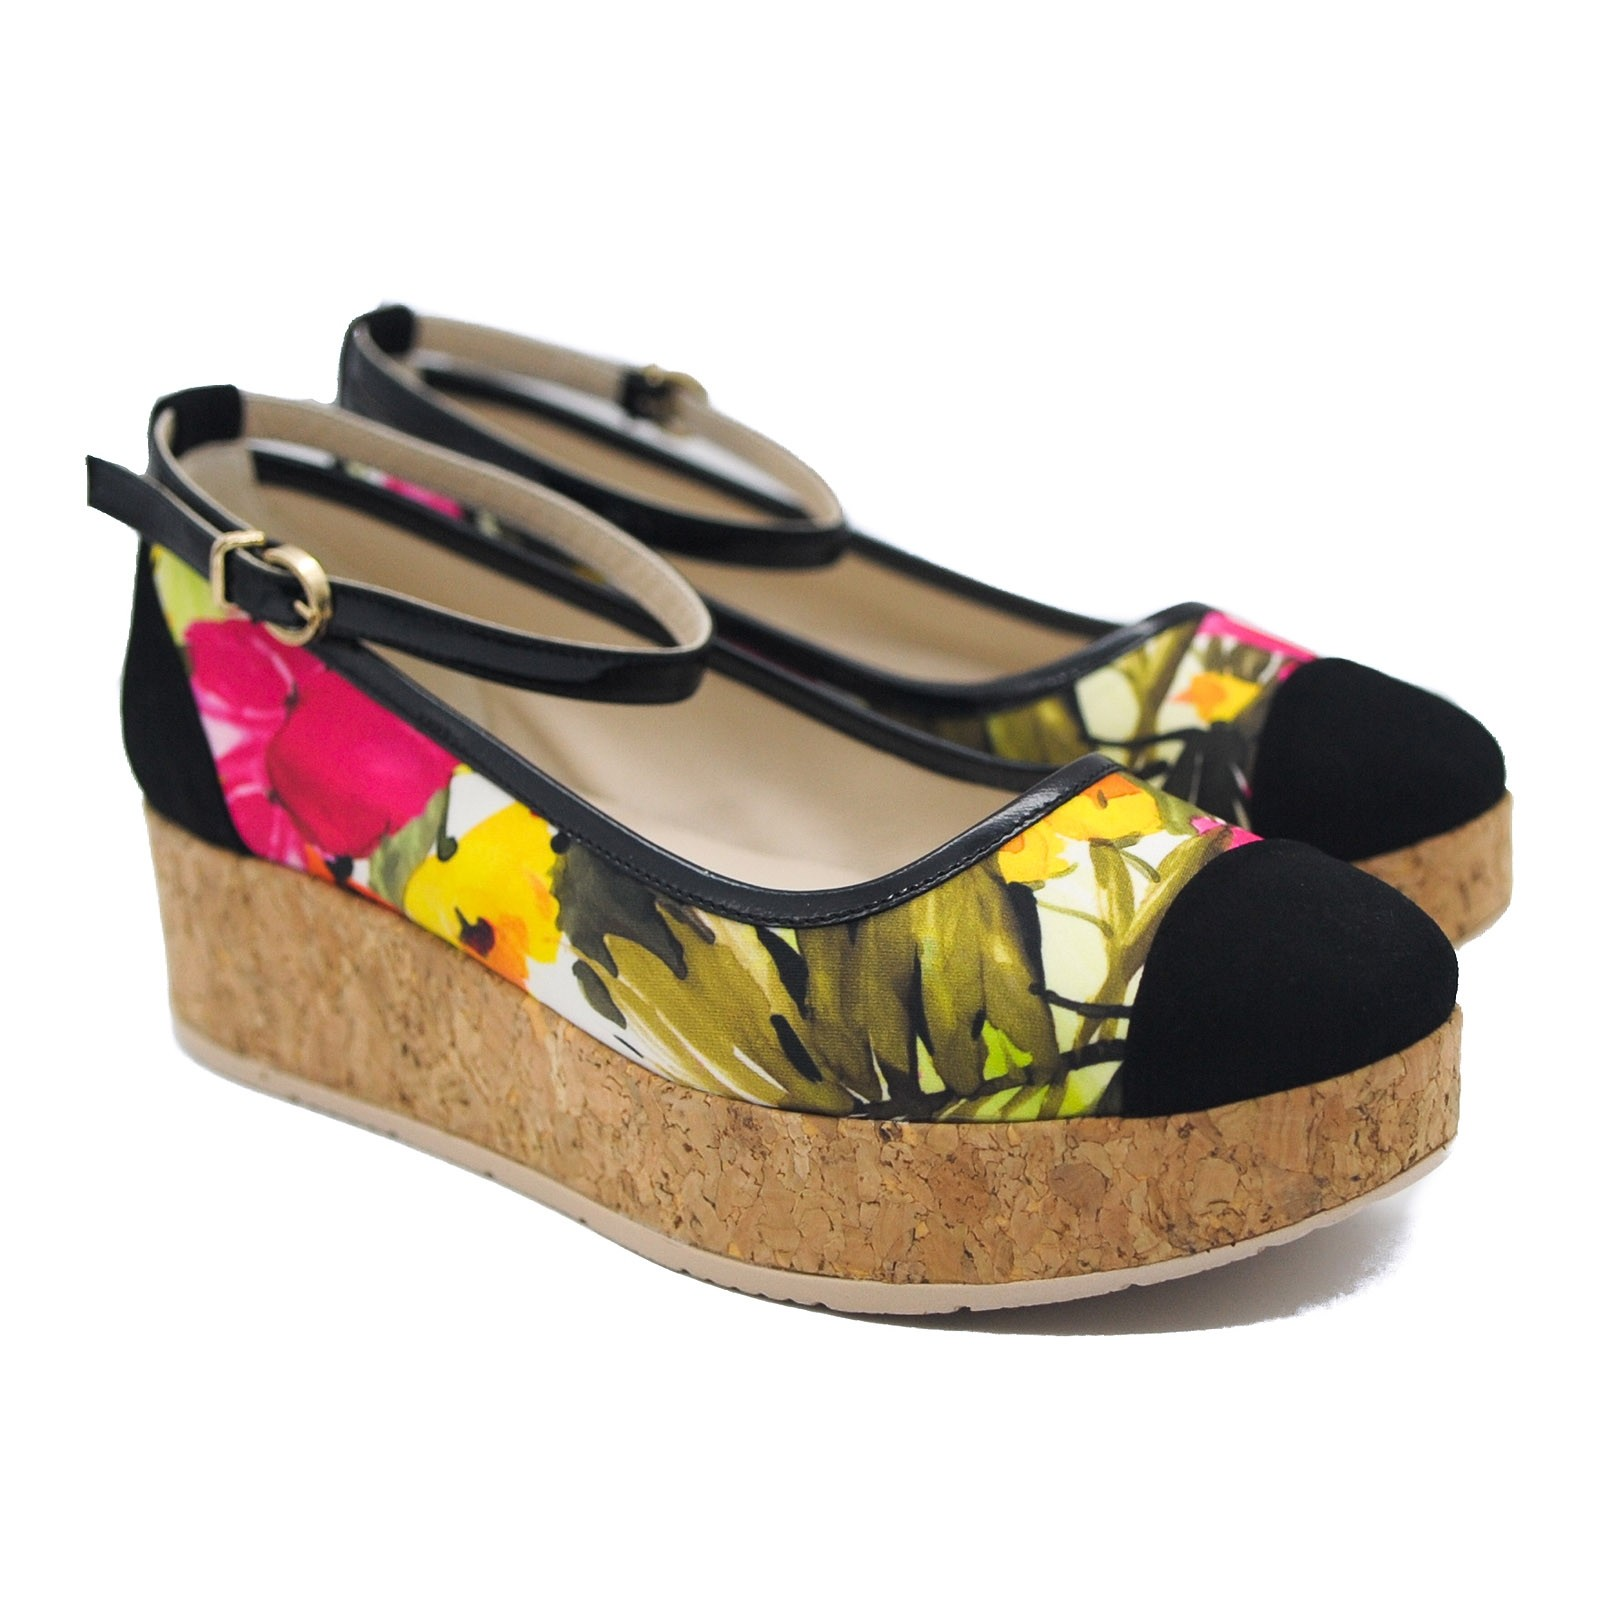 Goody2Shoes Floral Cork Platform Wedges with Black Trim and Ankle Fastening